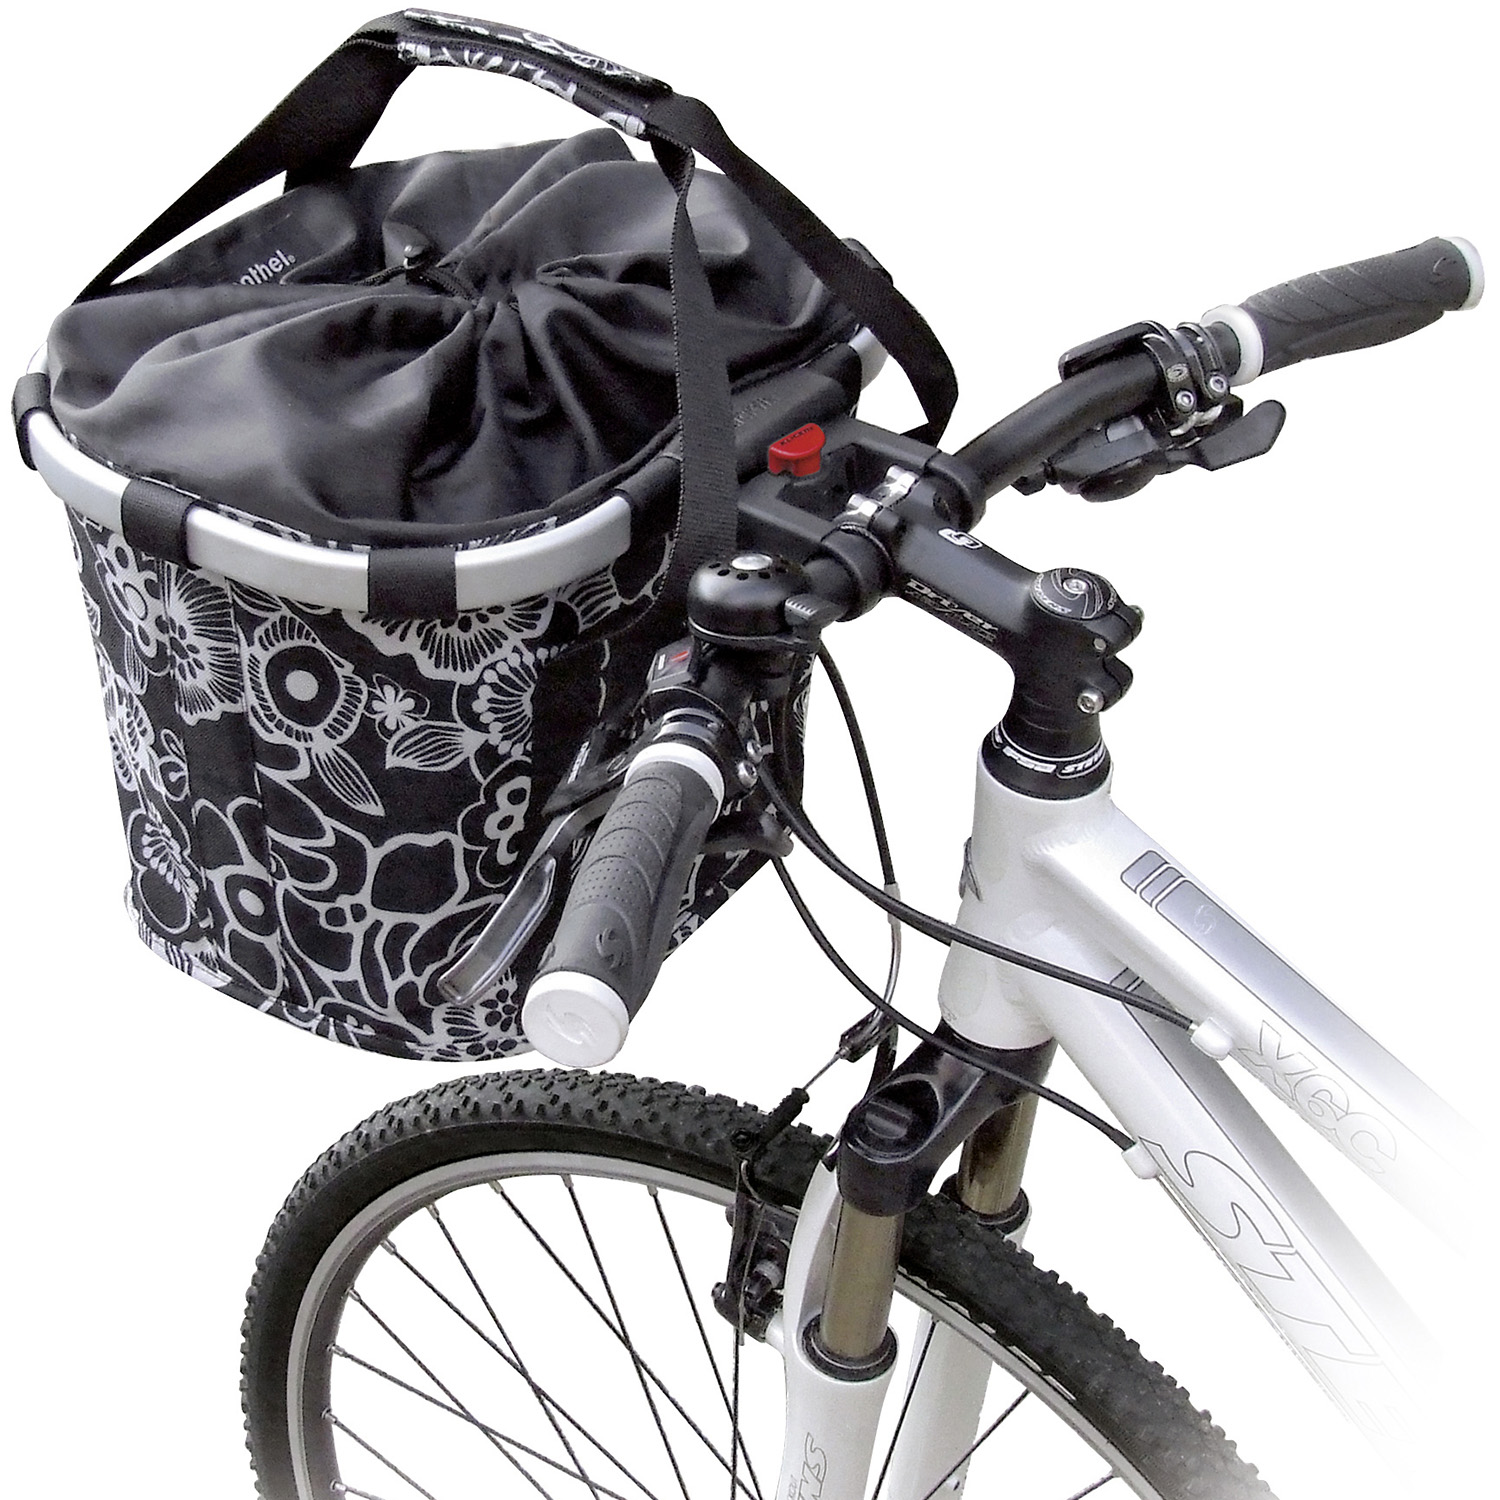 Bikebasket, Reisenthel basket with KLICKfix coupling for handlebar adapter